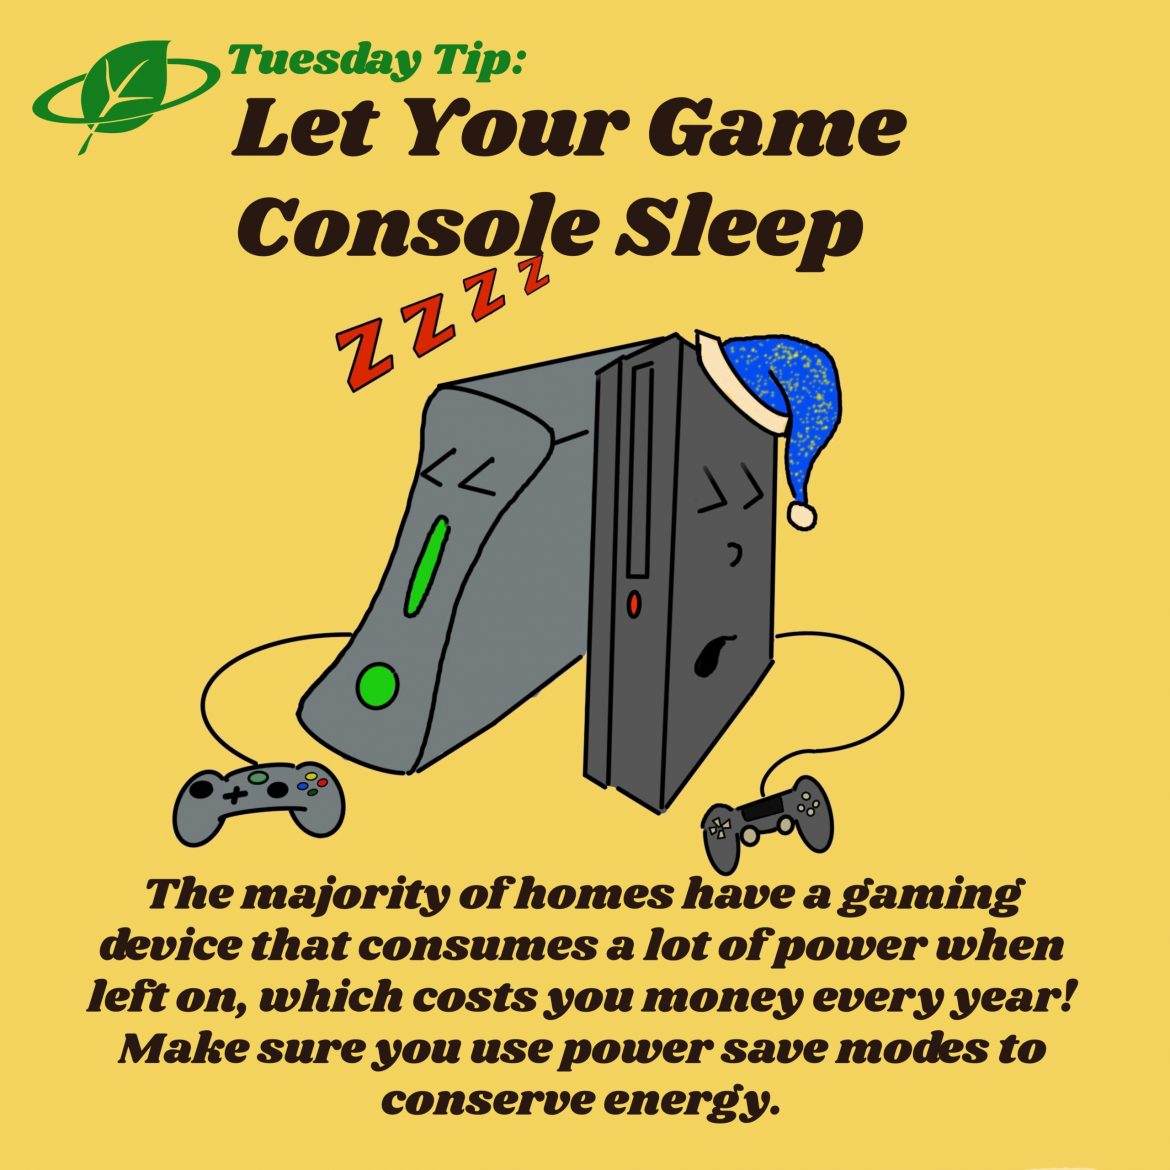 Let Your Game Console Sleep | Tuesday Tip